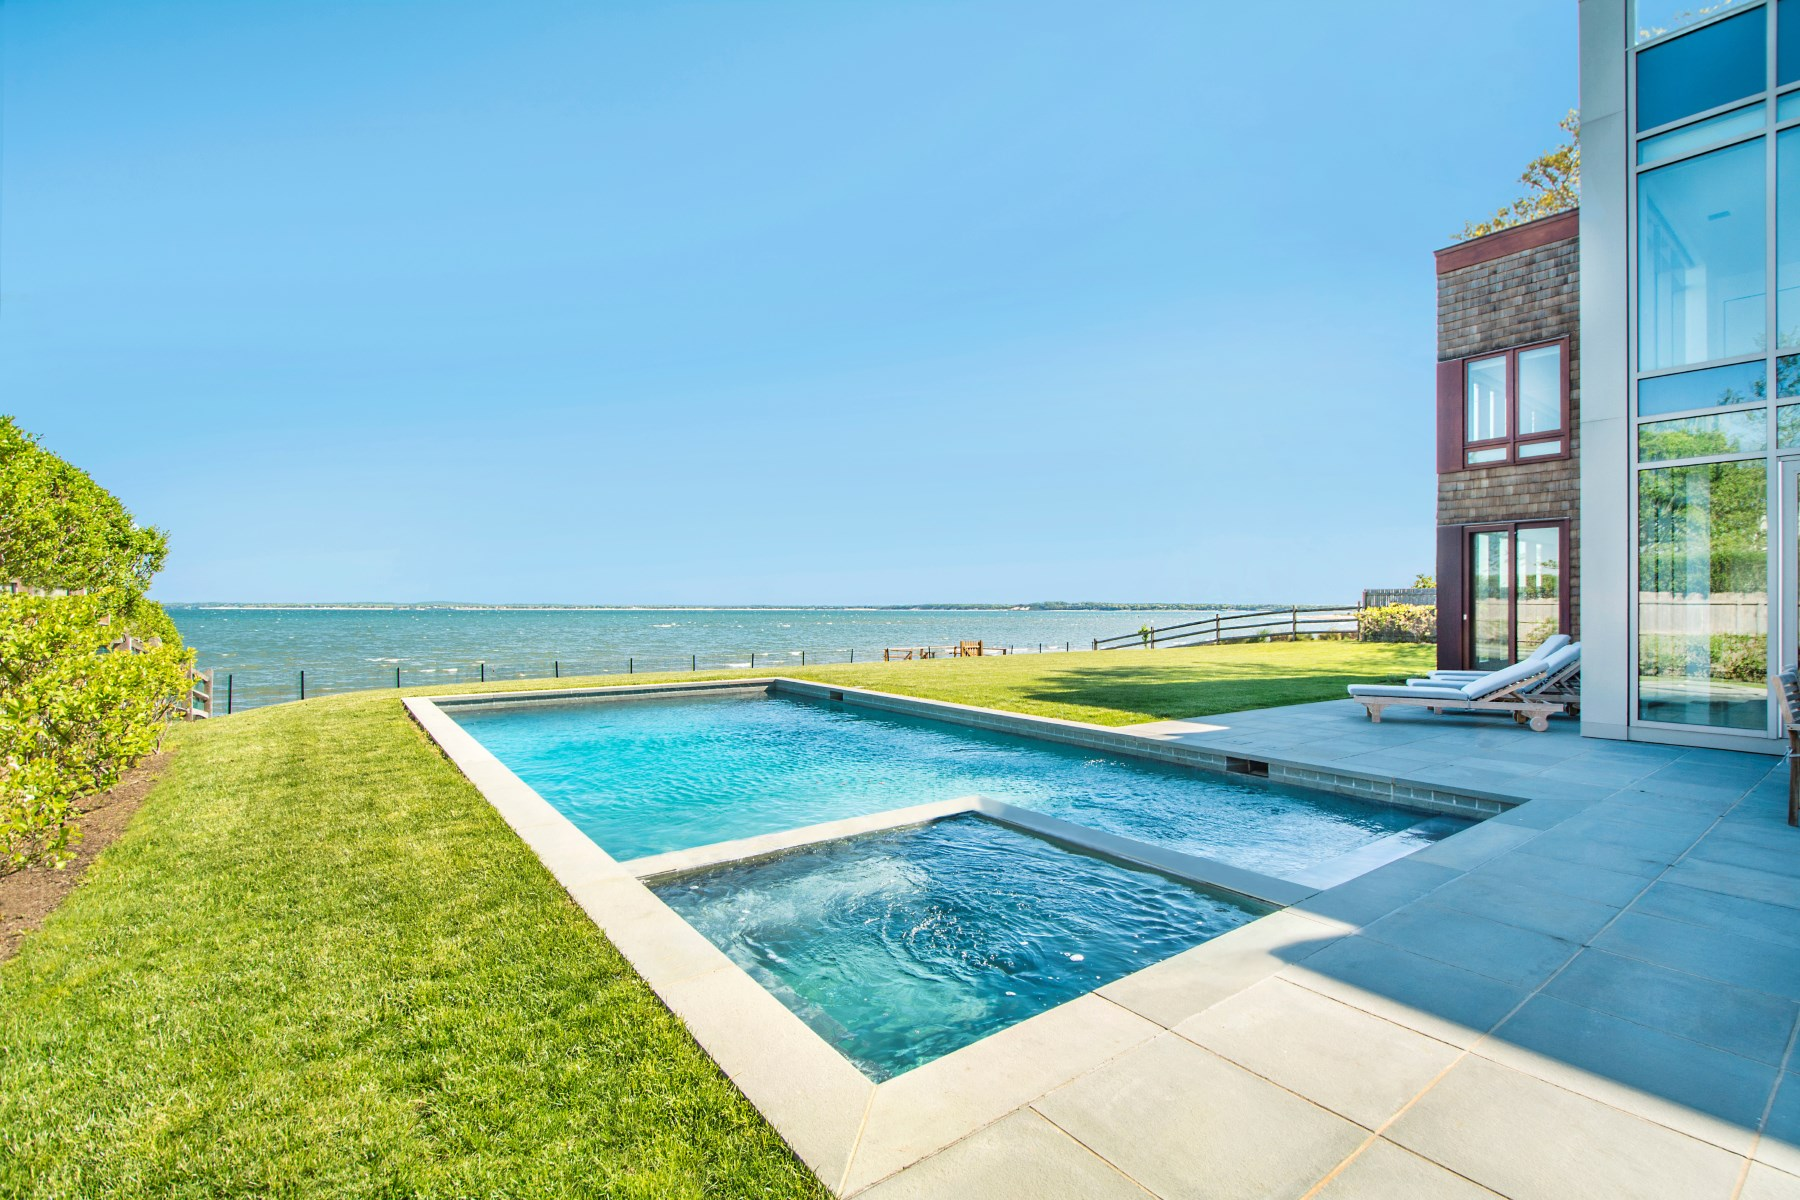 Villa per Vendita alle ore Sag Harbor Spectacular Waterfront 43 Noyac Bay Avenue Sag Harbor, New York 11963 Stati Uniti